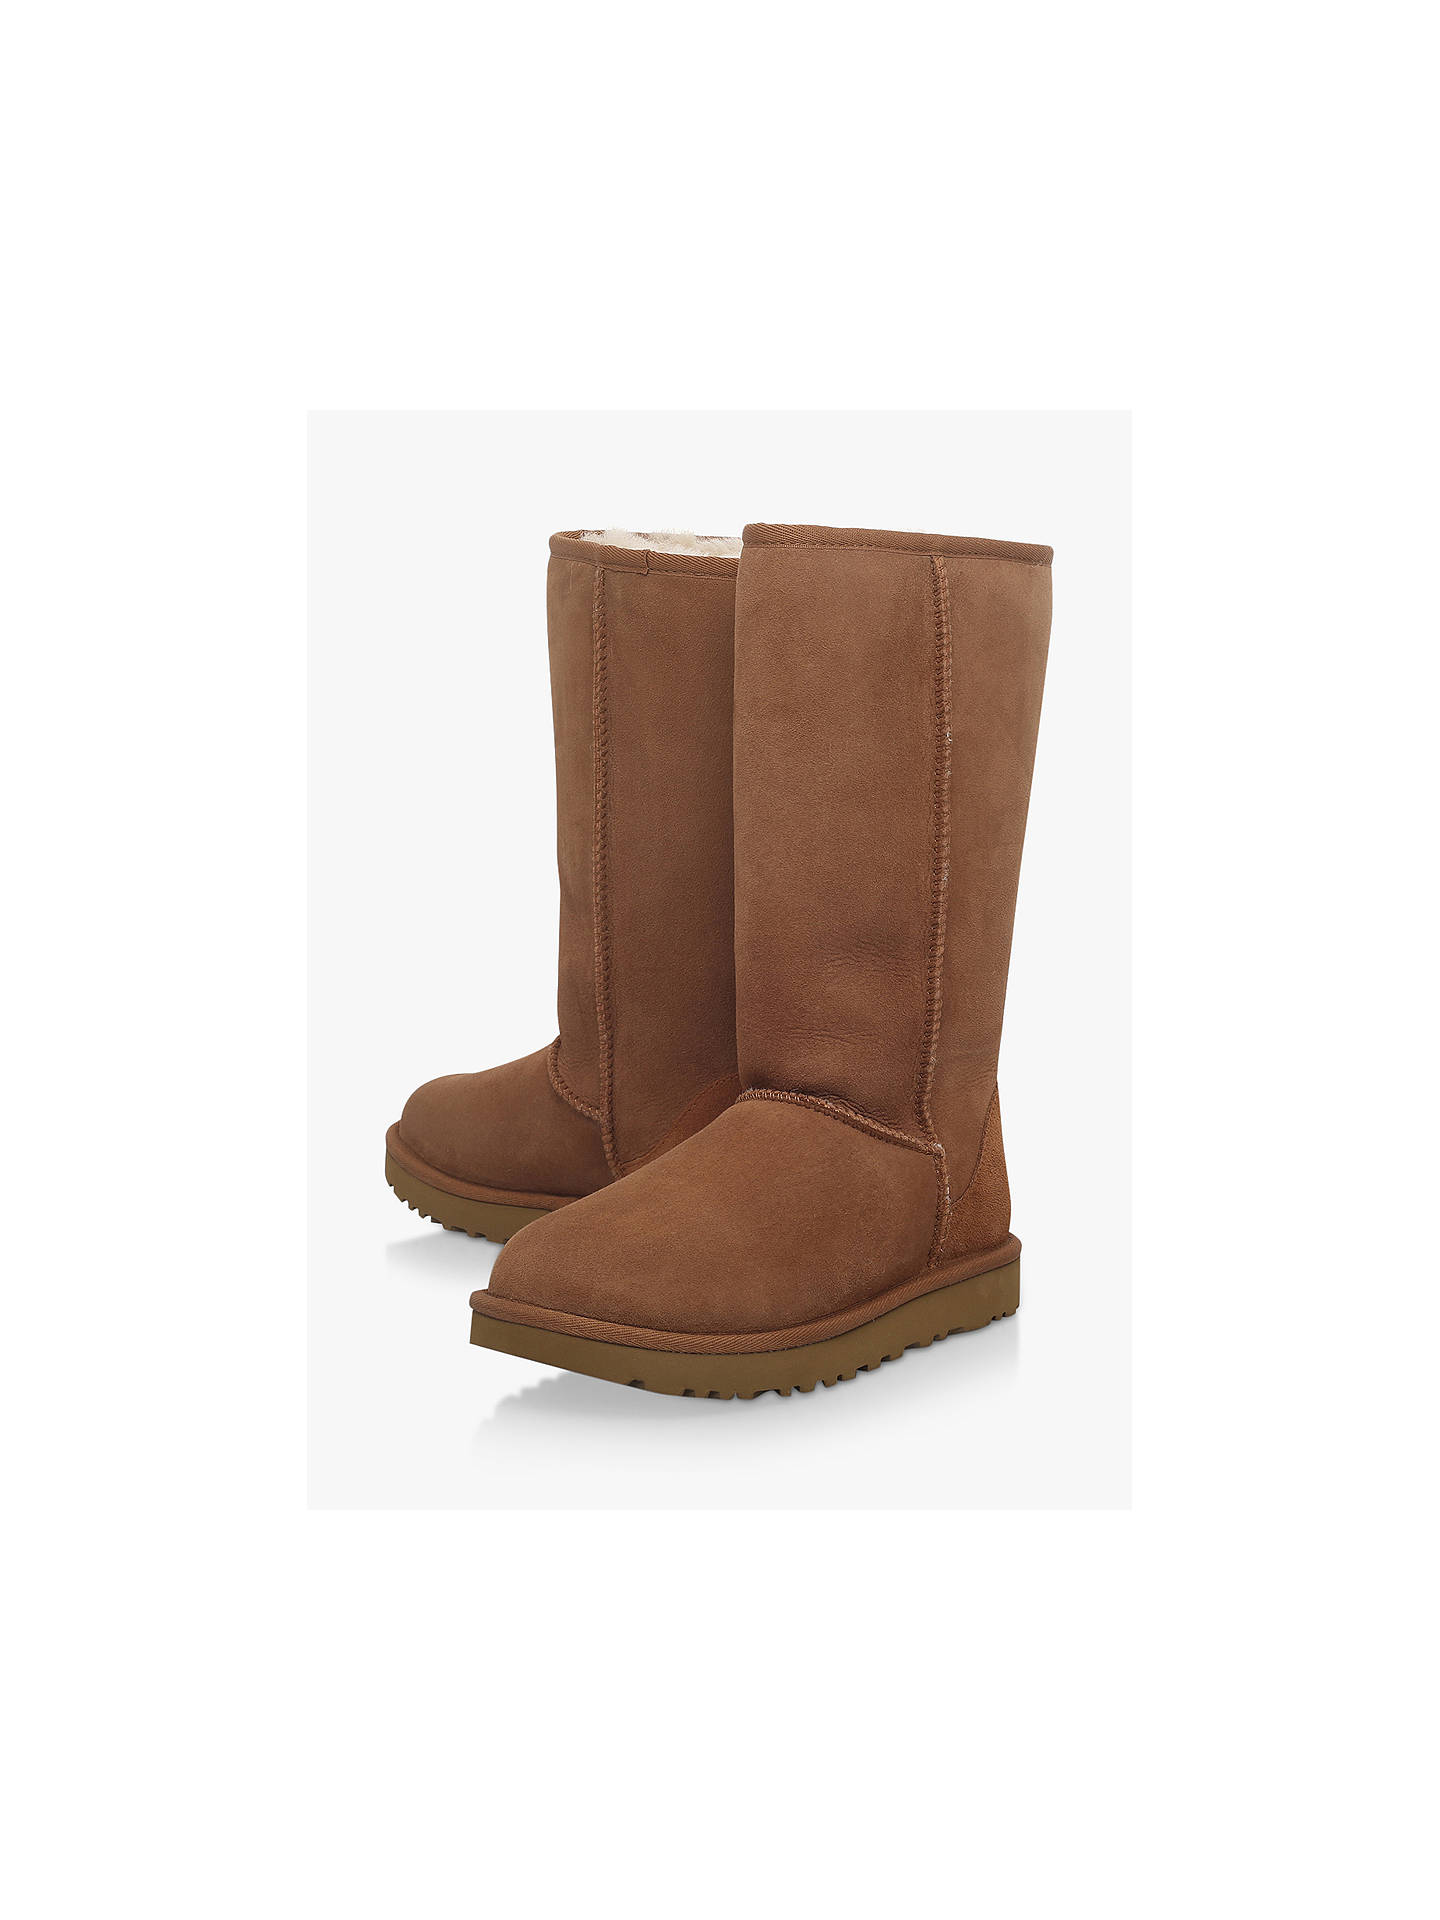 45f38cb775a3 UGG Classic II Tall Sheepskin Knee High Boots at John Lewis   Partners